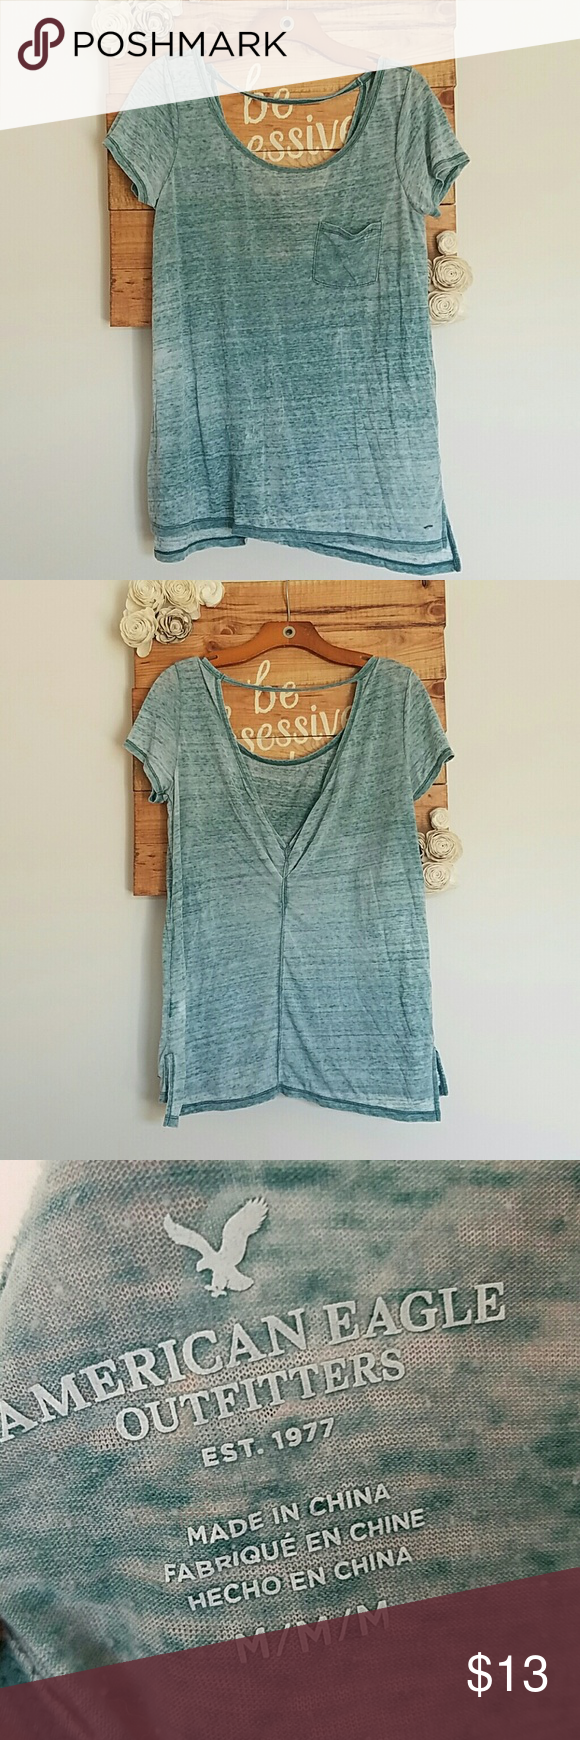 American Eagle pocket t Relaxed fitting pocket t-shirt. Washed out look. Runs a little large. Cutout detail in the back. Between a blue and green color. American Eagle Outfitters Tops Tees - Short Sleeve